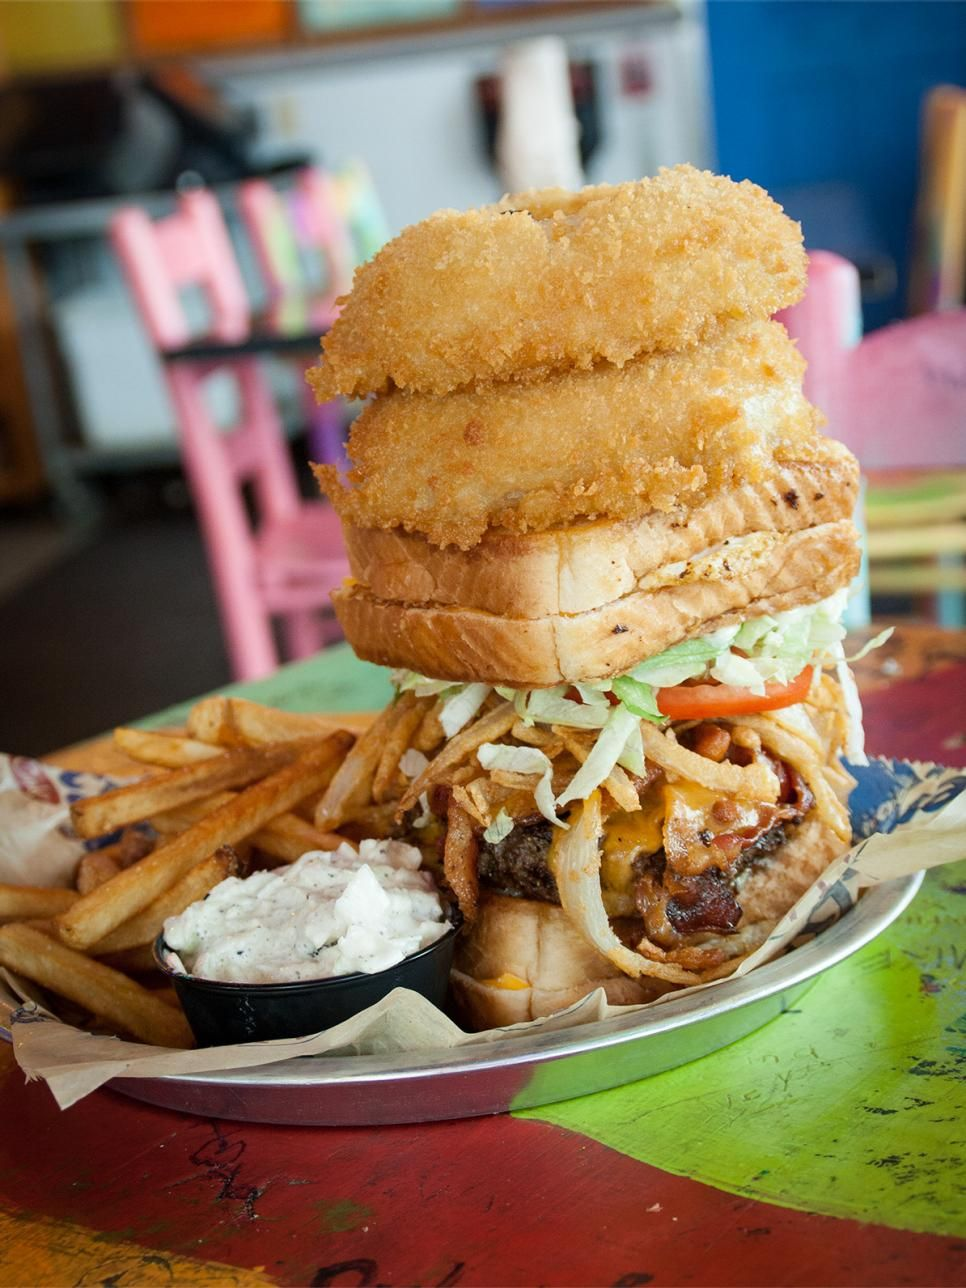 The Most Over The Top Burgers In The Country Restaurants Food Network Food Network Food Network Recipes Food Burger